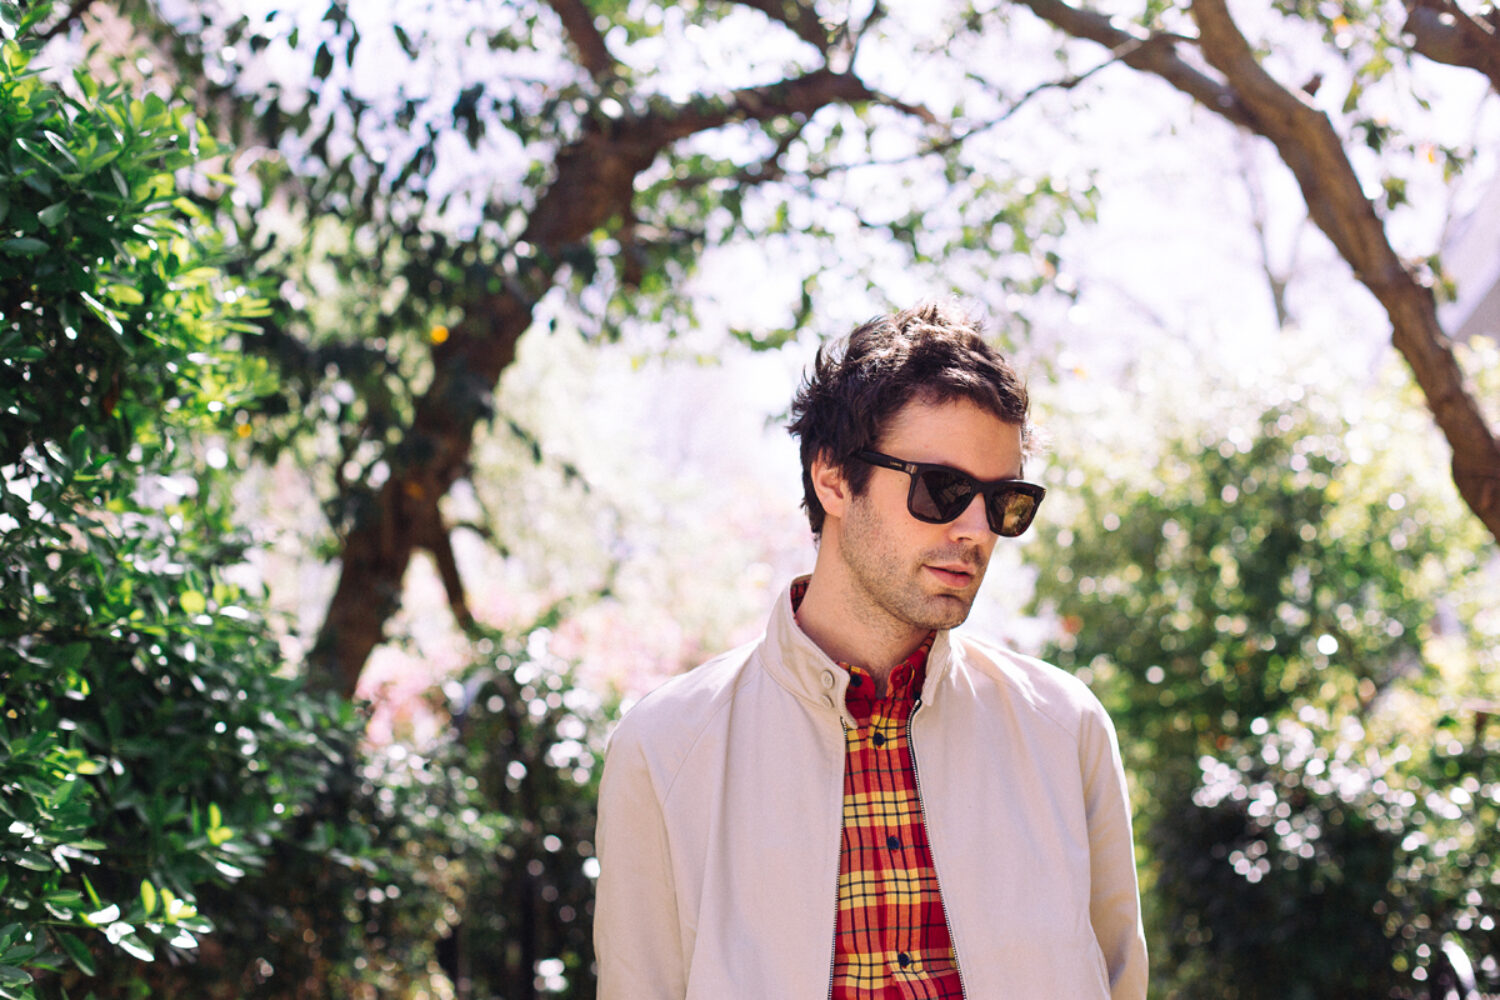 Passion Pit have aired yet another track, 'Hey K'